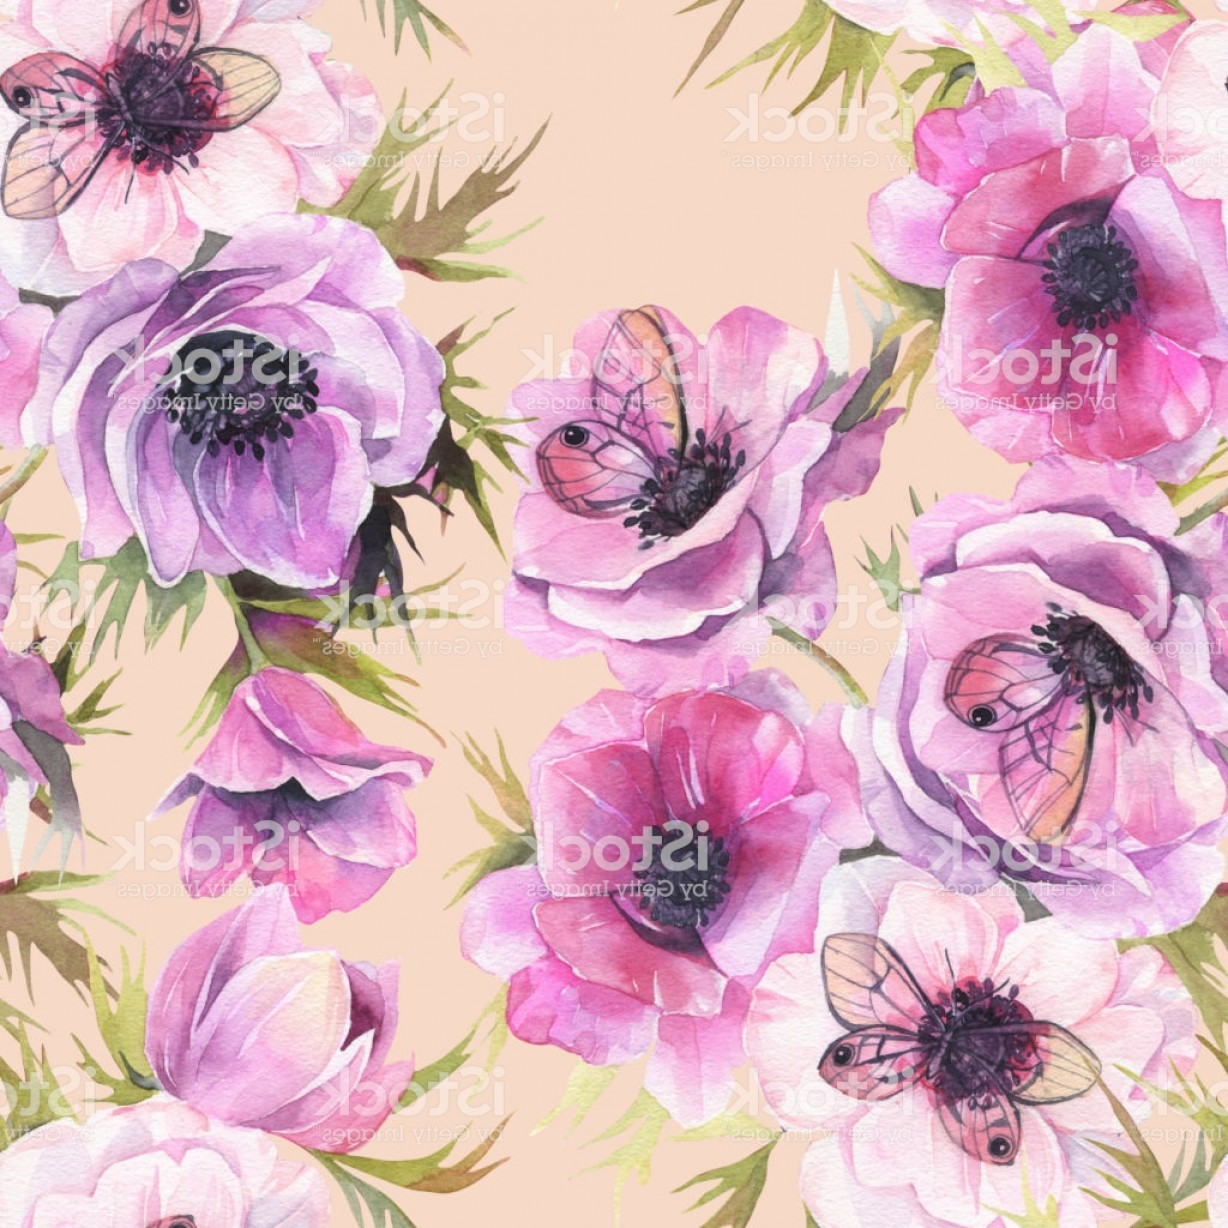 Purple Butterfly Wallpaper Vector: Watercolor Seamless Pattern With Anemones And Butterflies Romantic Botanical Gm